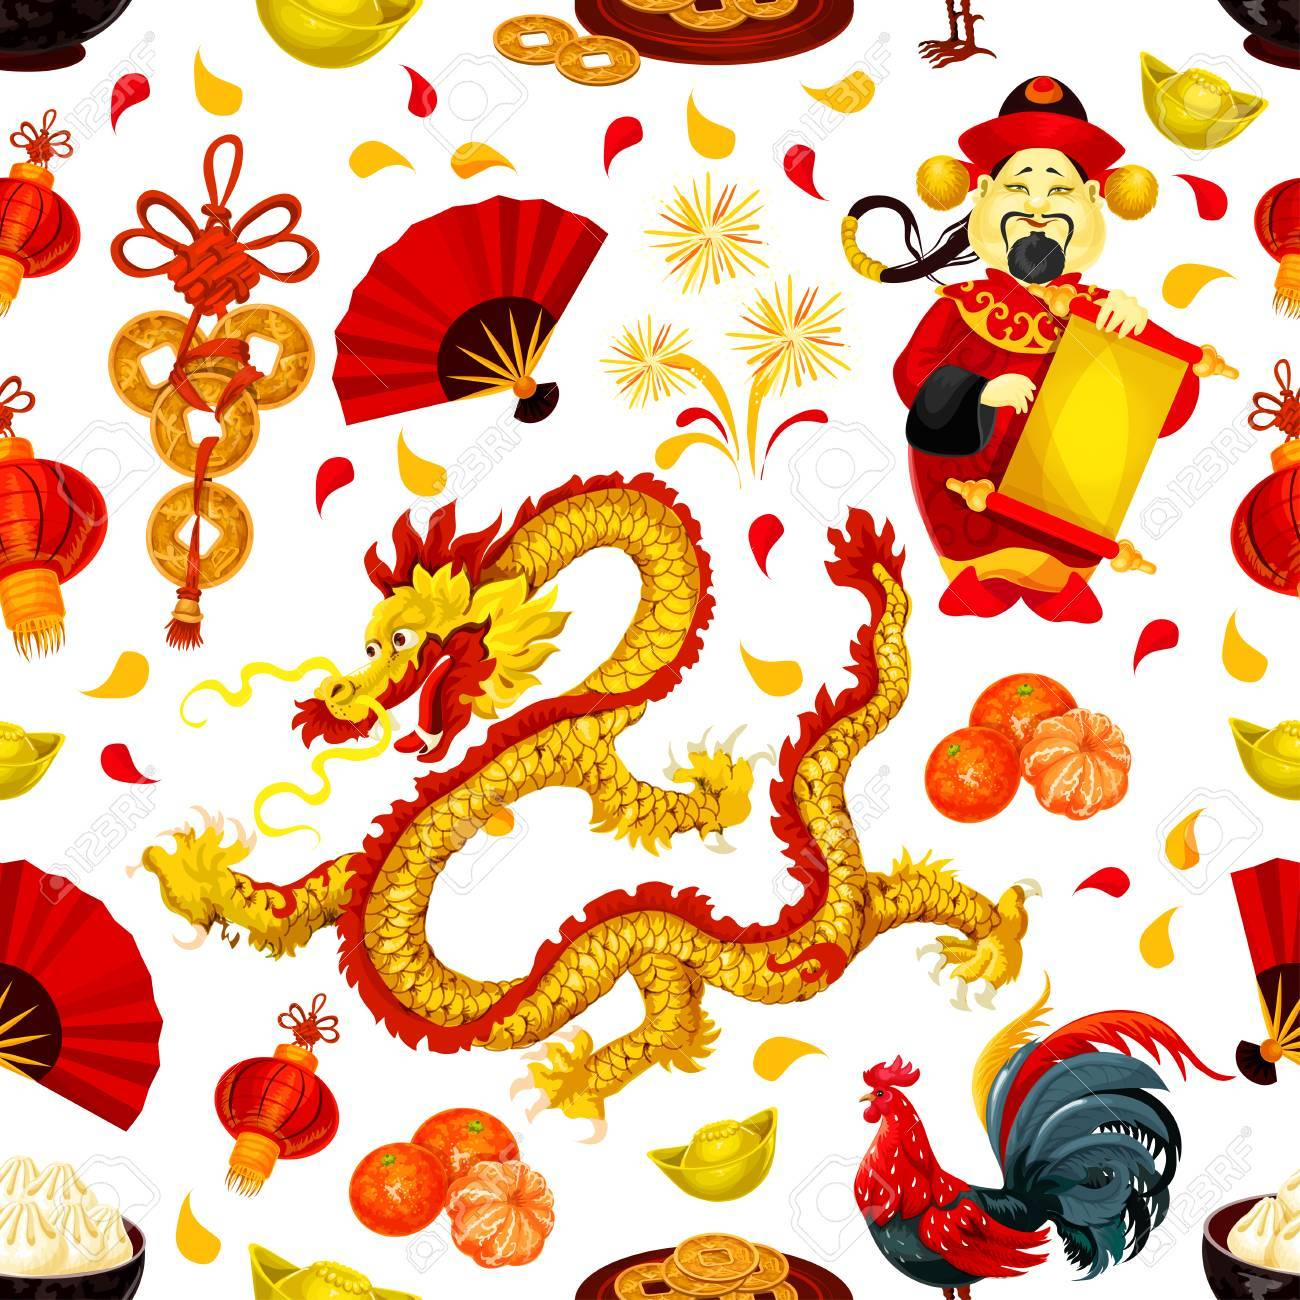 chinese new year symbols seamless pattern with red rooster lantern golden coin dragon - Chinese New Year Symbols